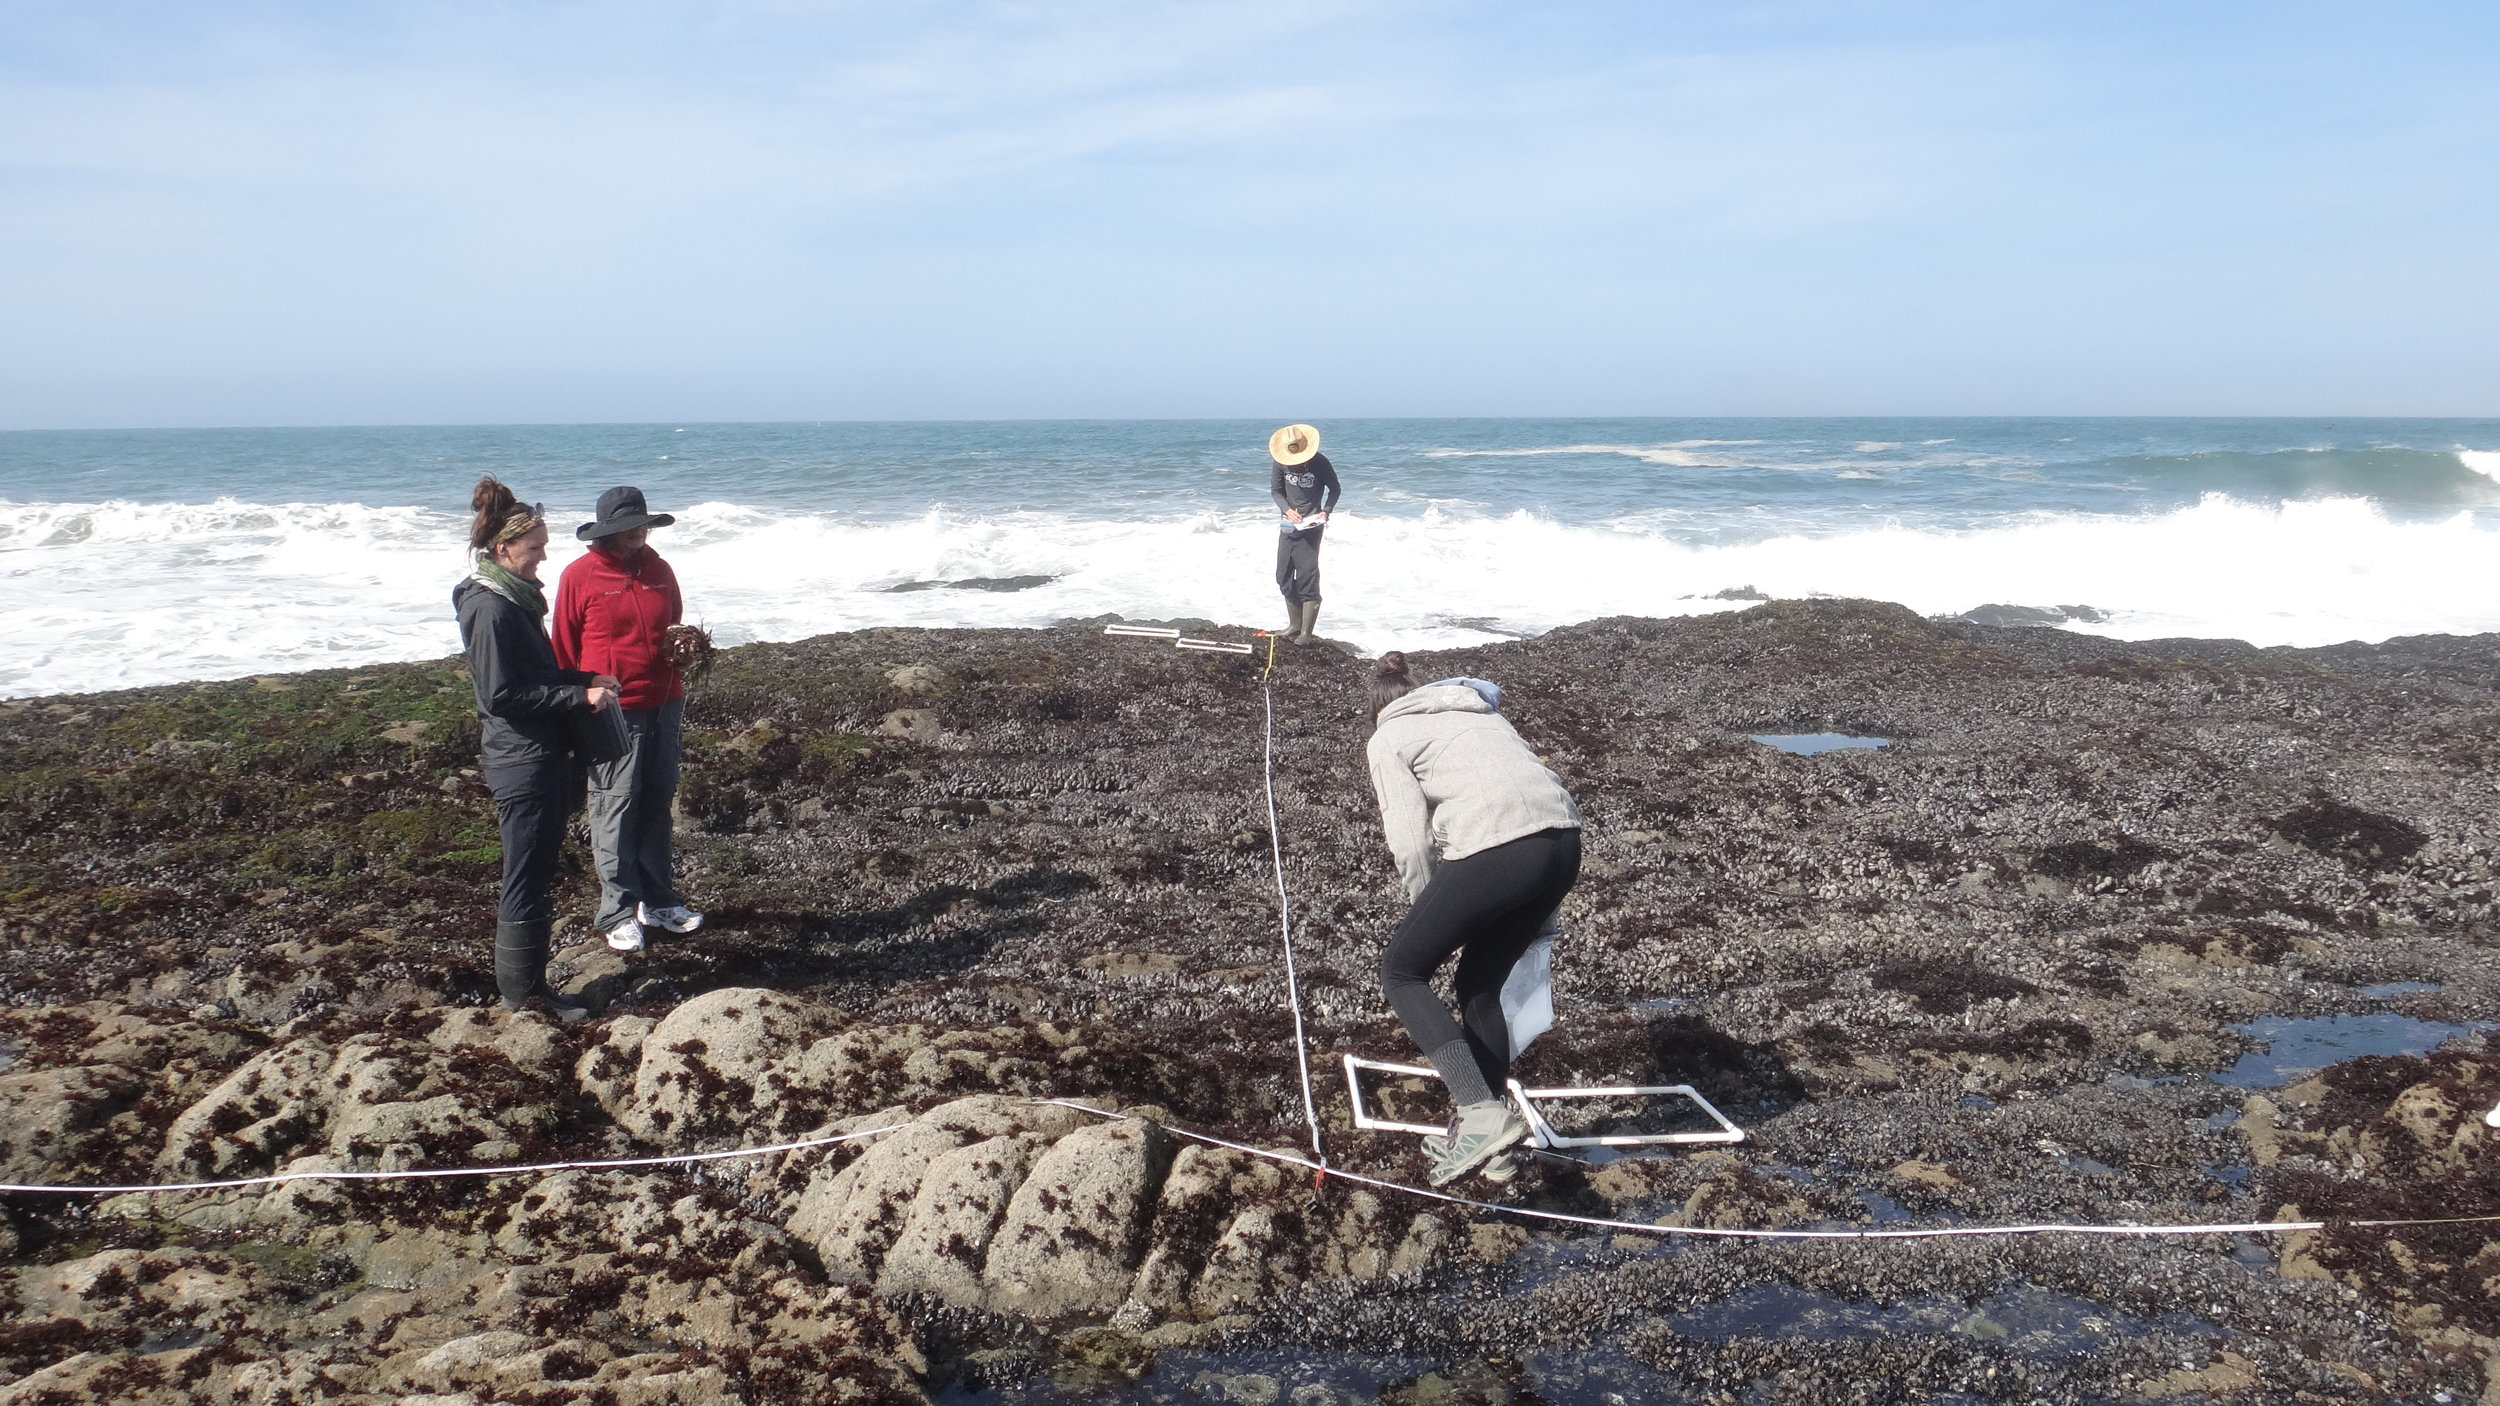 Dr. Susan Williams (in red), helping us to collect samples on the intertidal zone to look for microplastics. Photo credit: Alexander Carsh